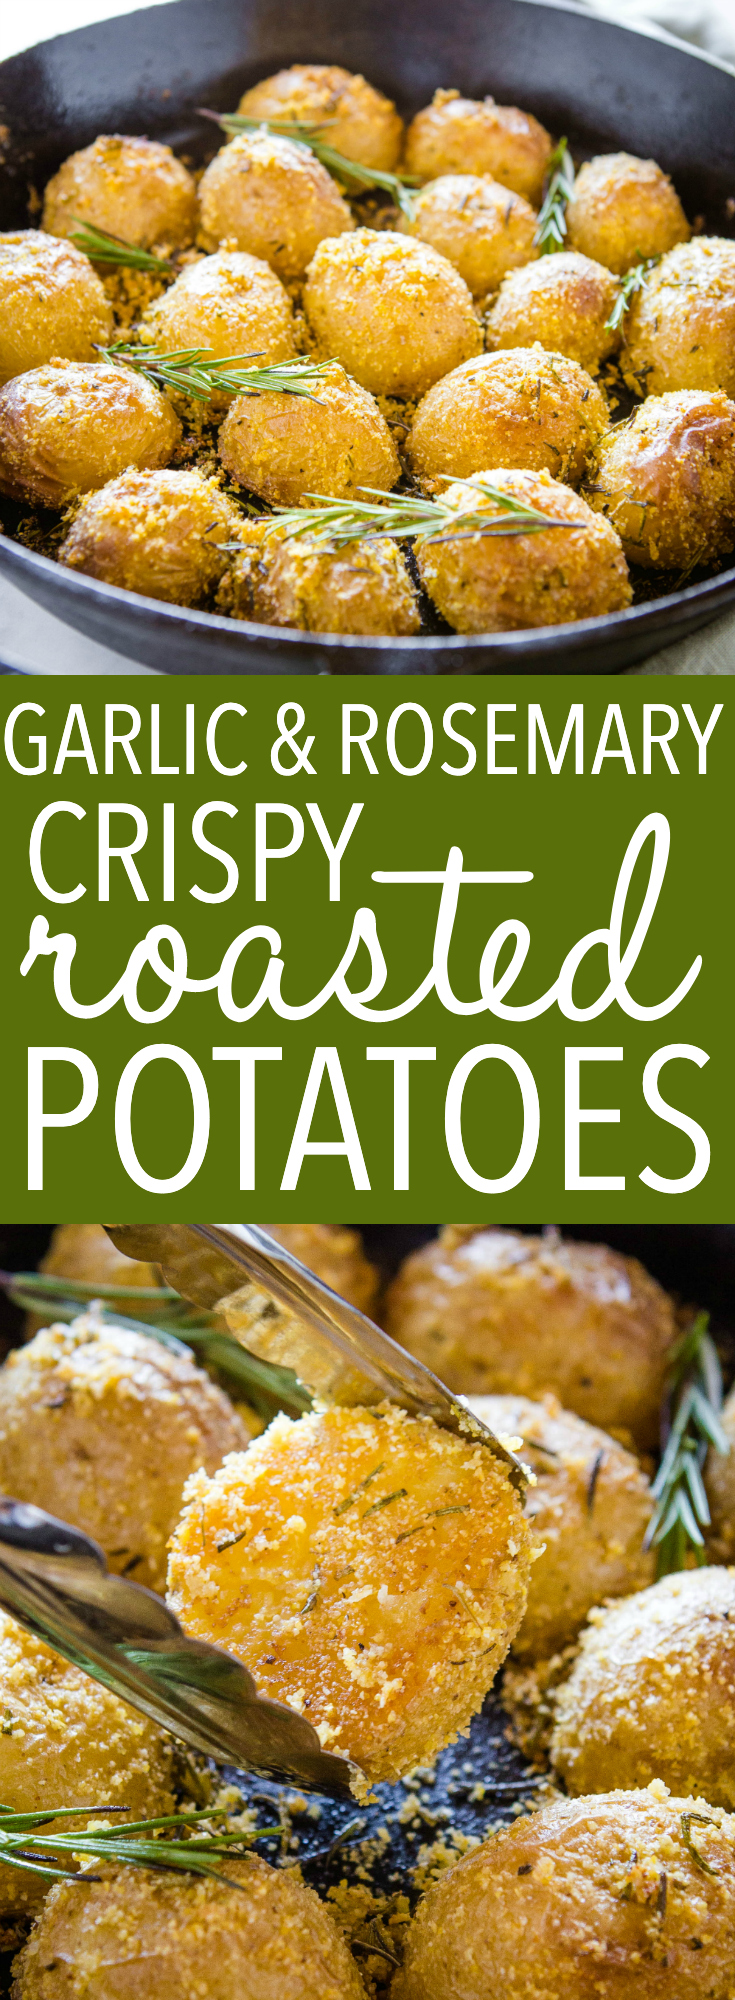 crispy rosemary roasted potatoes pinterest